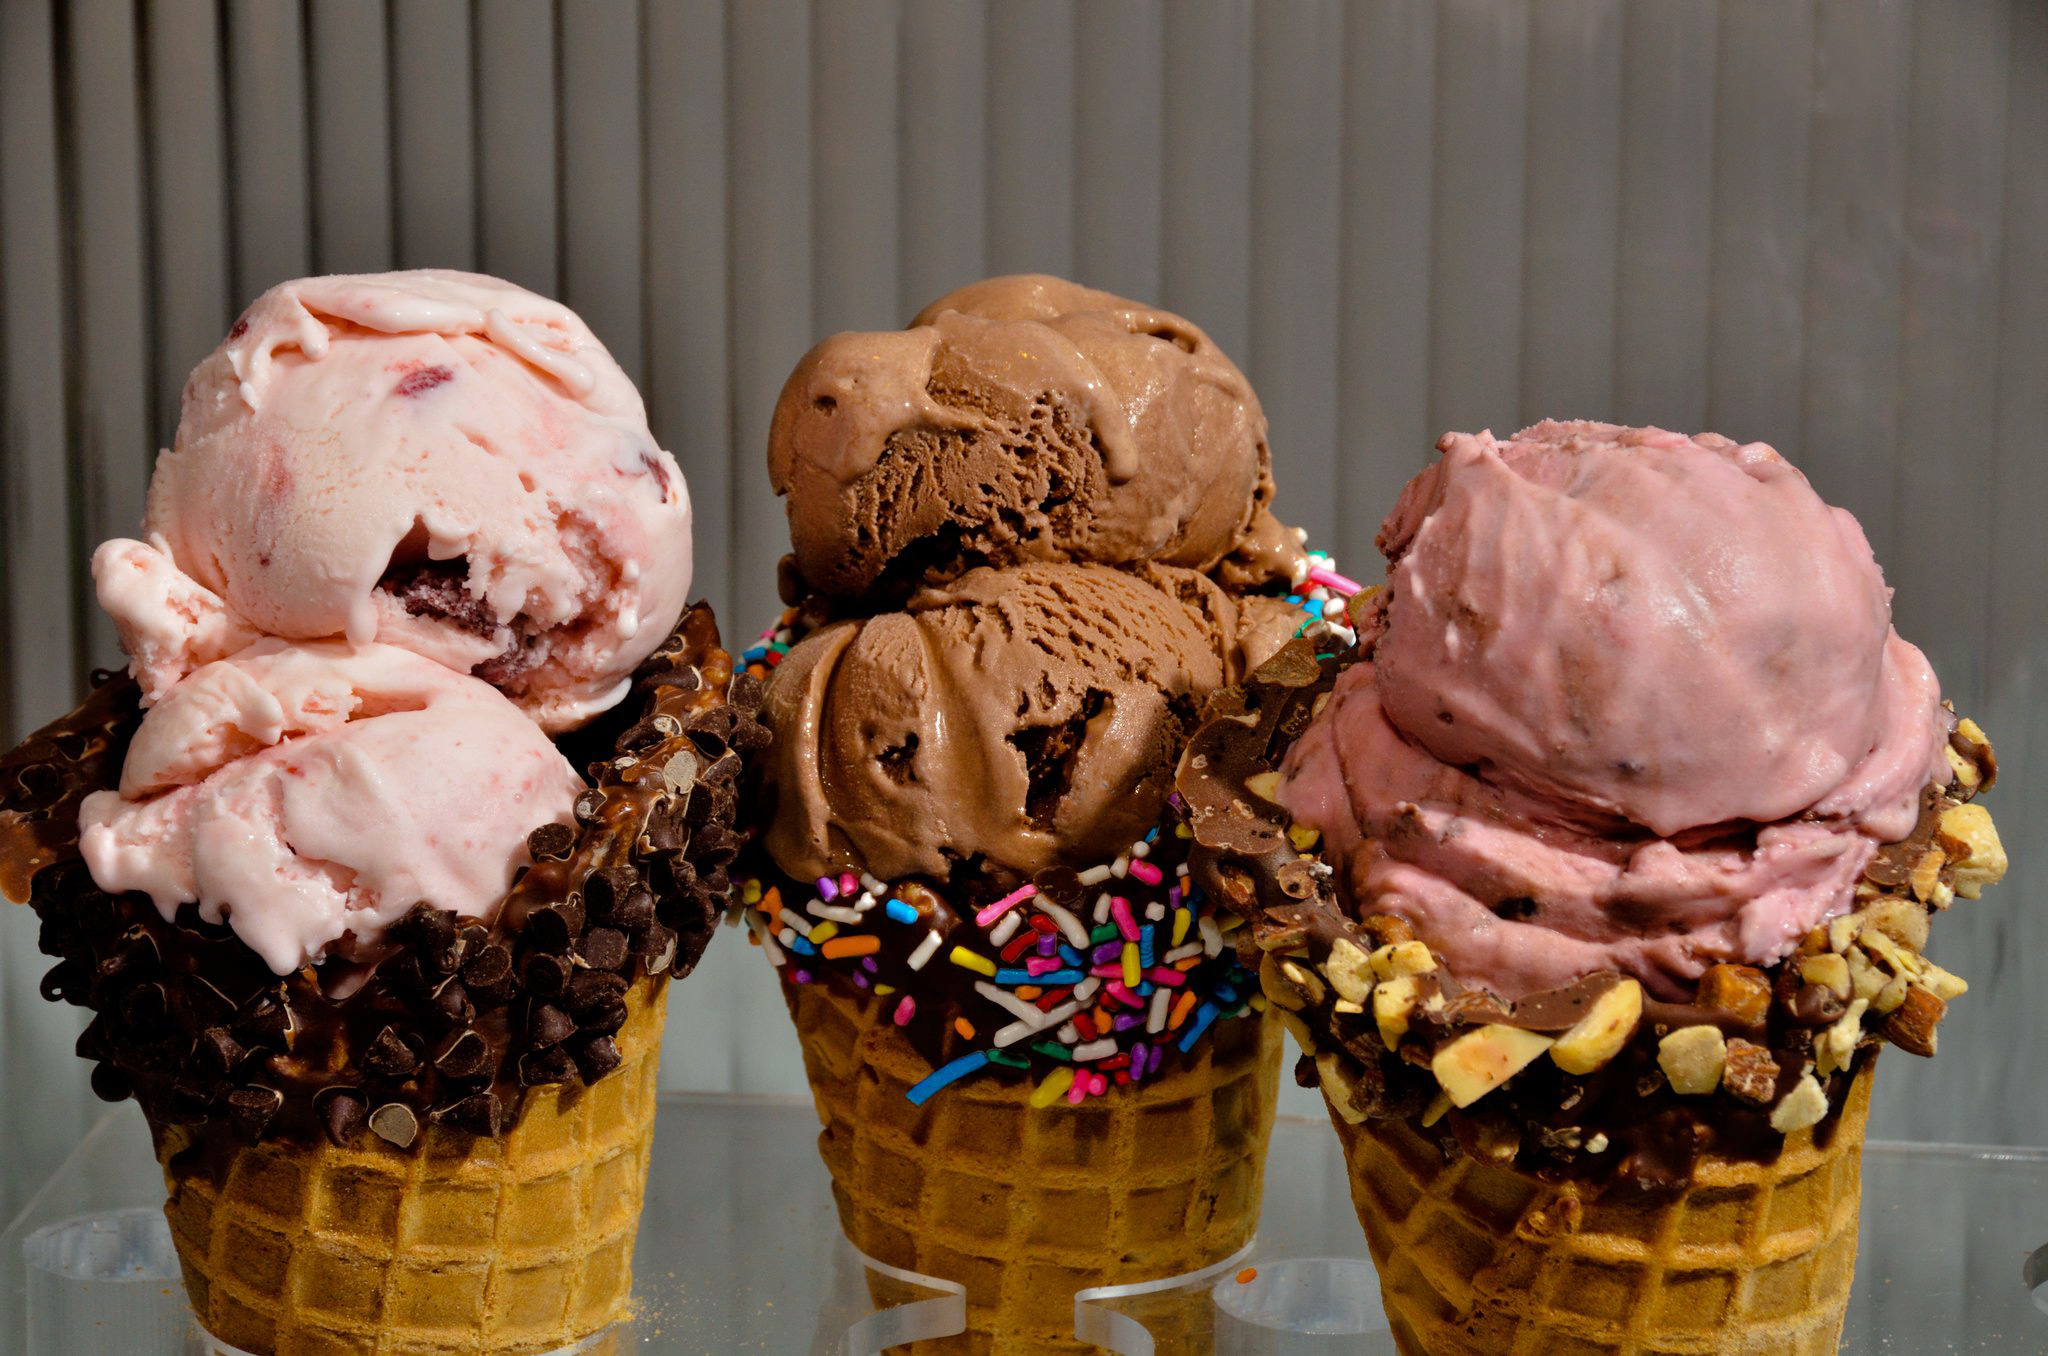 Best ice cream shops